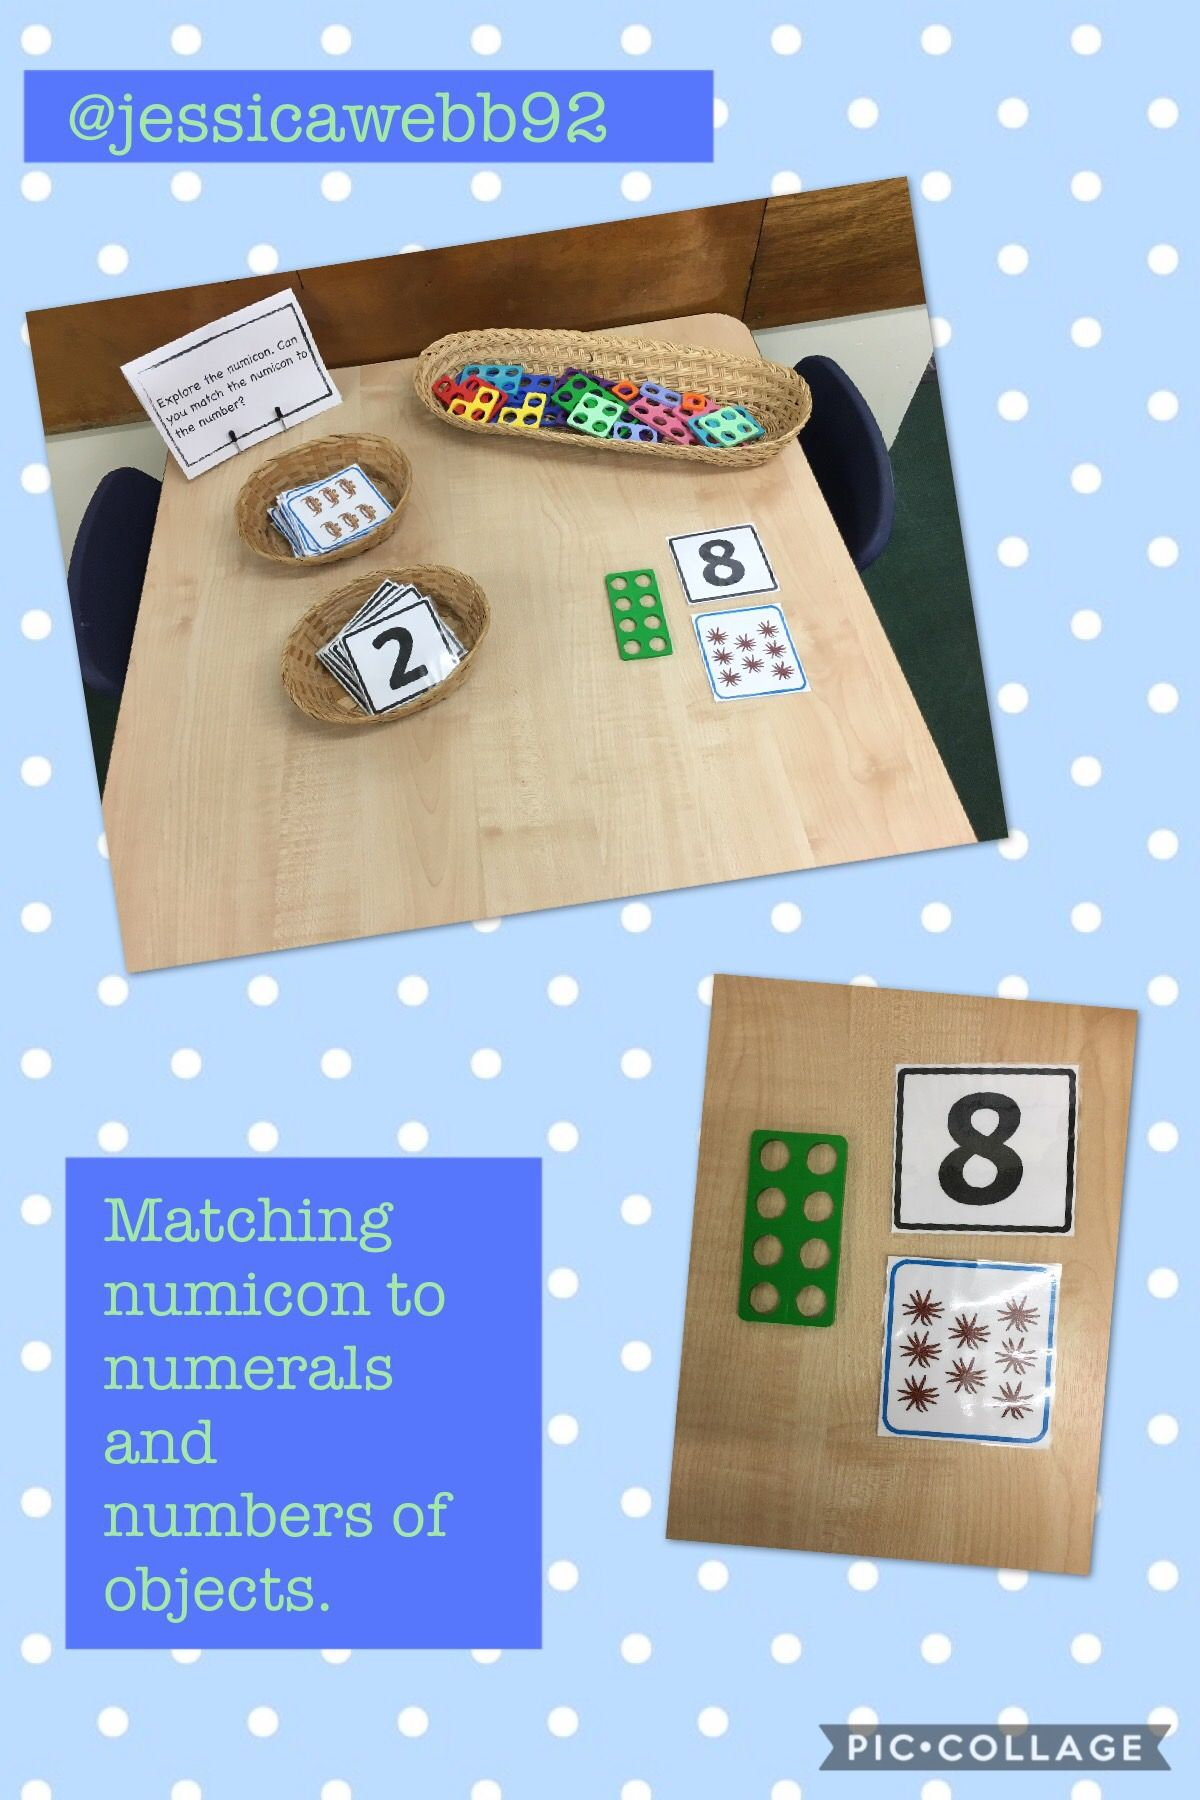 Match The Numicon To The Numeral And Number Of Objects